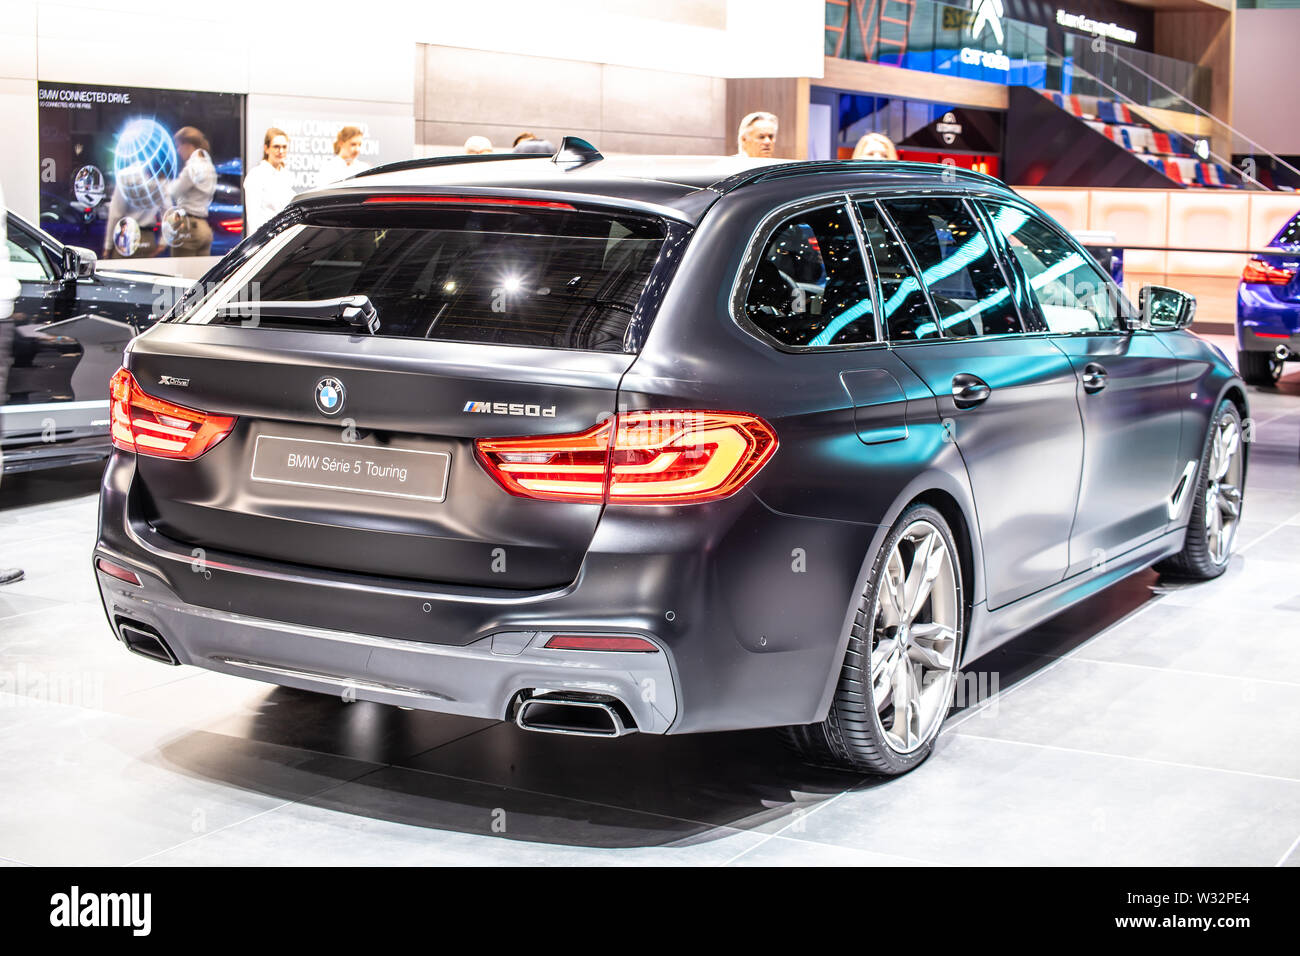 Geneva Switzerland March 2019 Black Bmw 5 Series Touring M550d Geneva International Motor Show 5er Station Wagon Manufactured And Marketed By Bmw Stock Photo Alamy